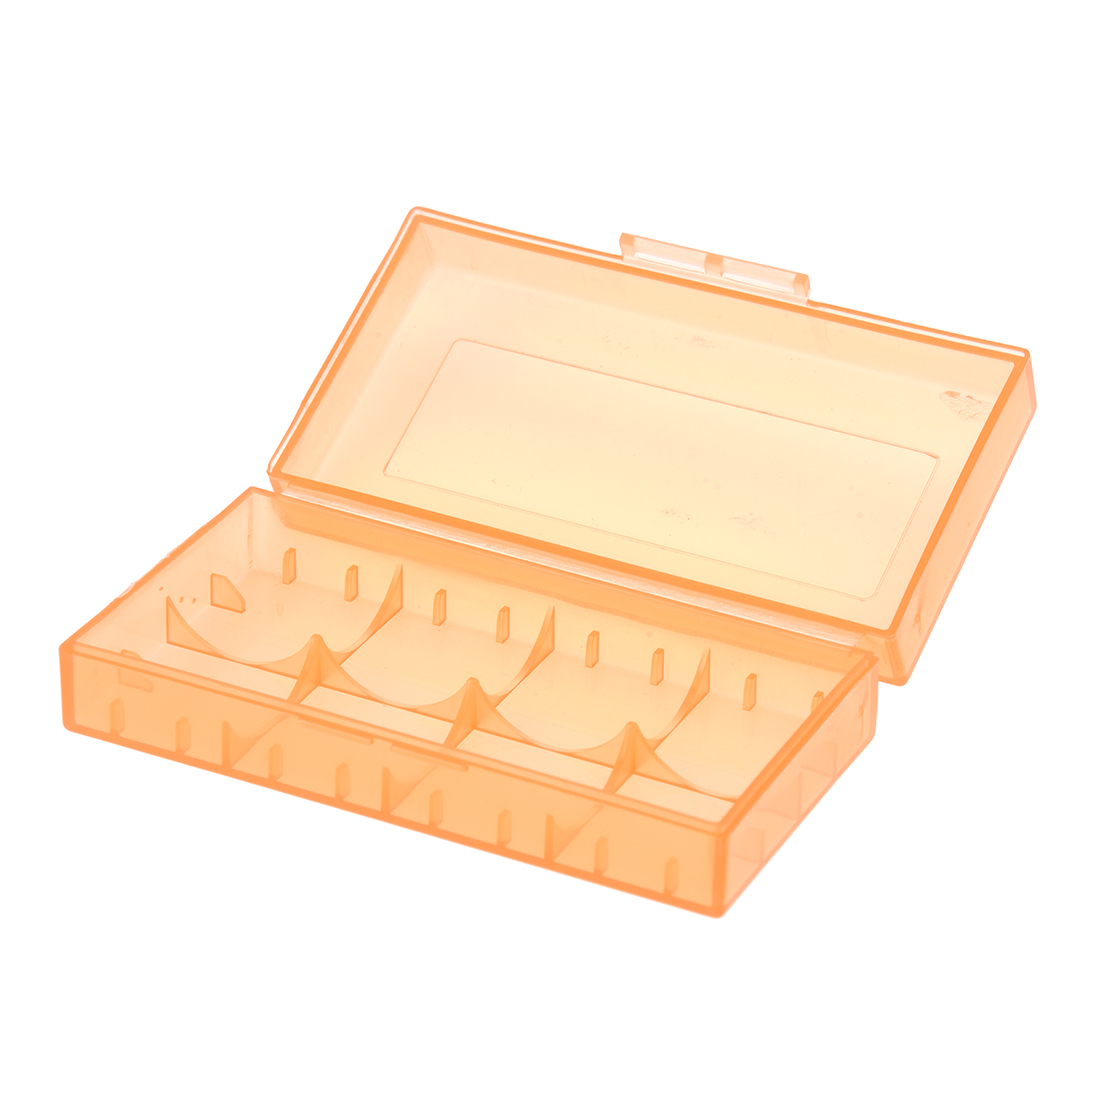 18650 CR123A <font><b>16340</b></font> Akku Harte Fall Halter Box Lagerung Box orange image